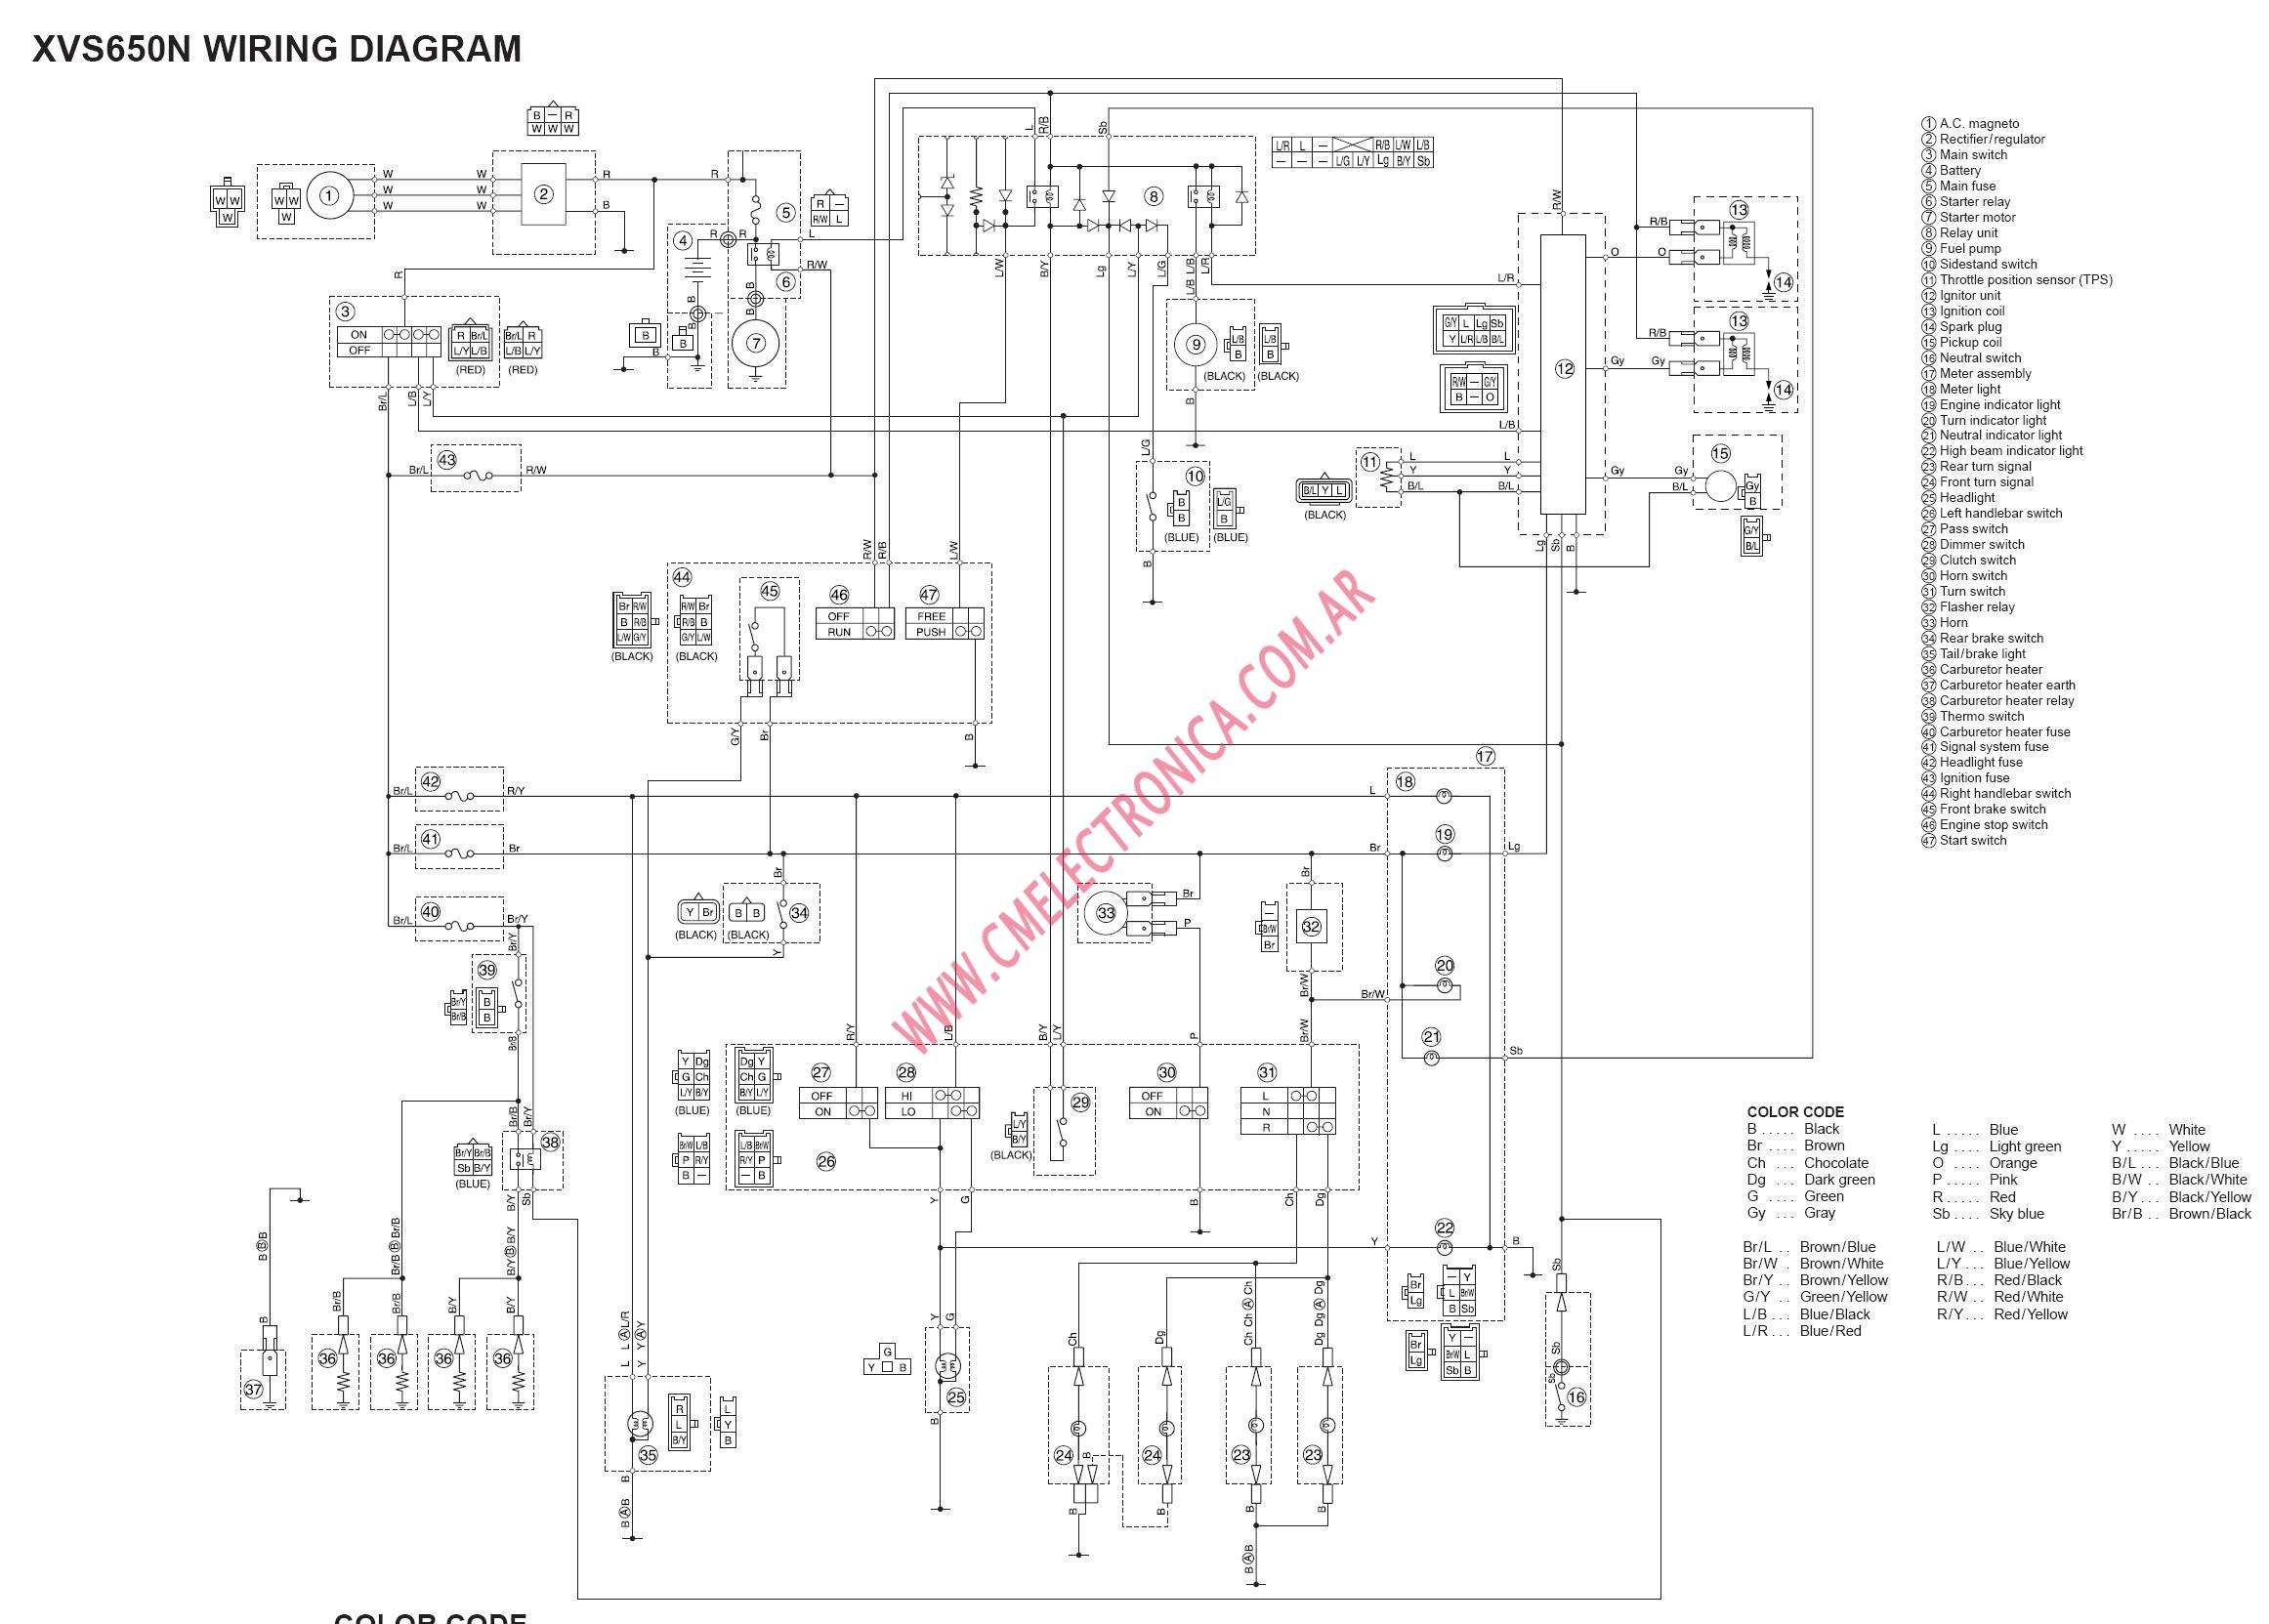 Wiring Diagram For 2007 Gsxr 600